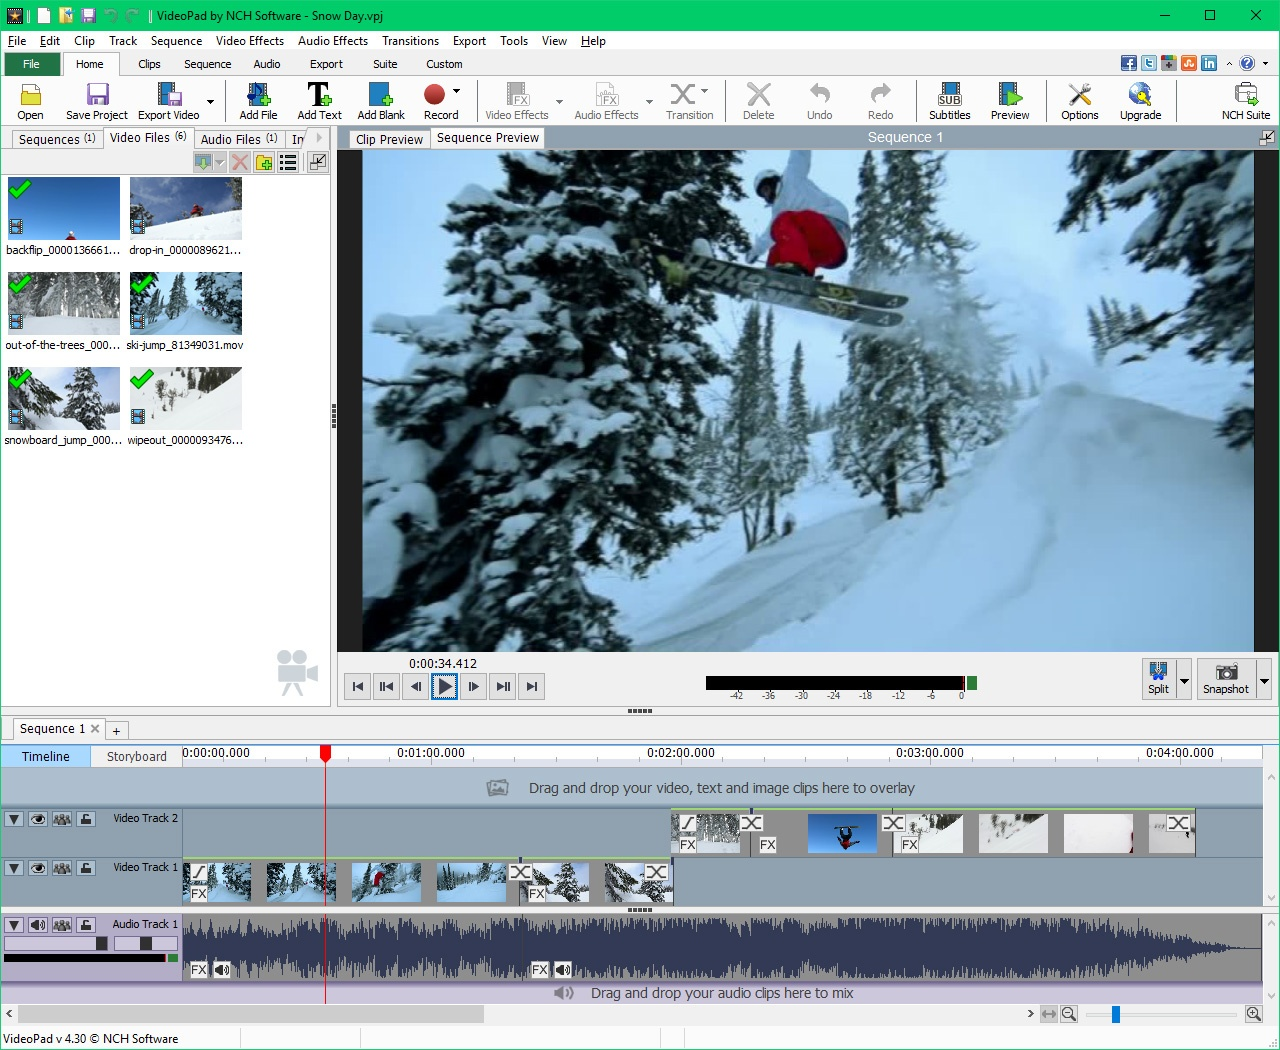 VideoPad Video Editor 10.21 Free Download - VideoHelp